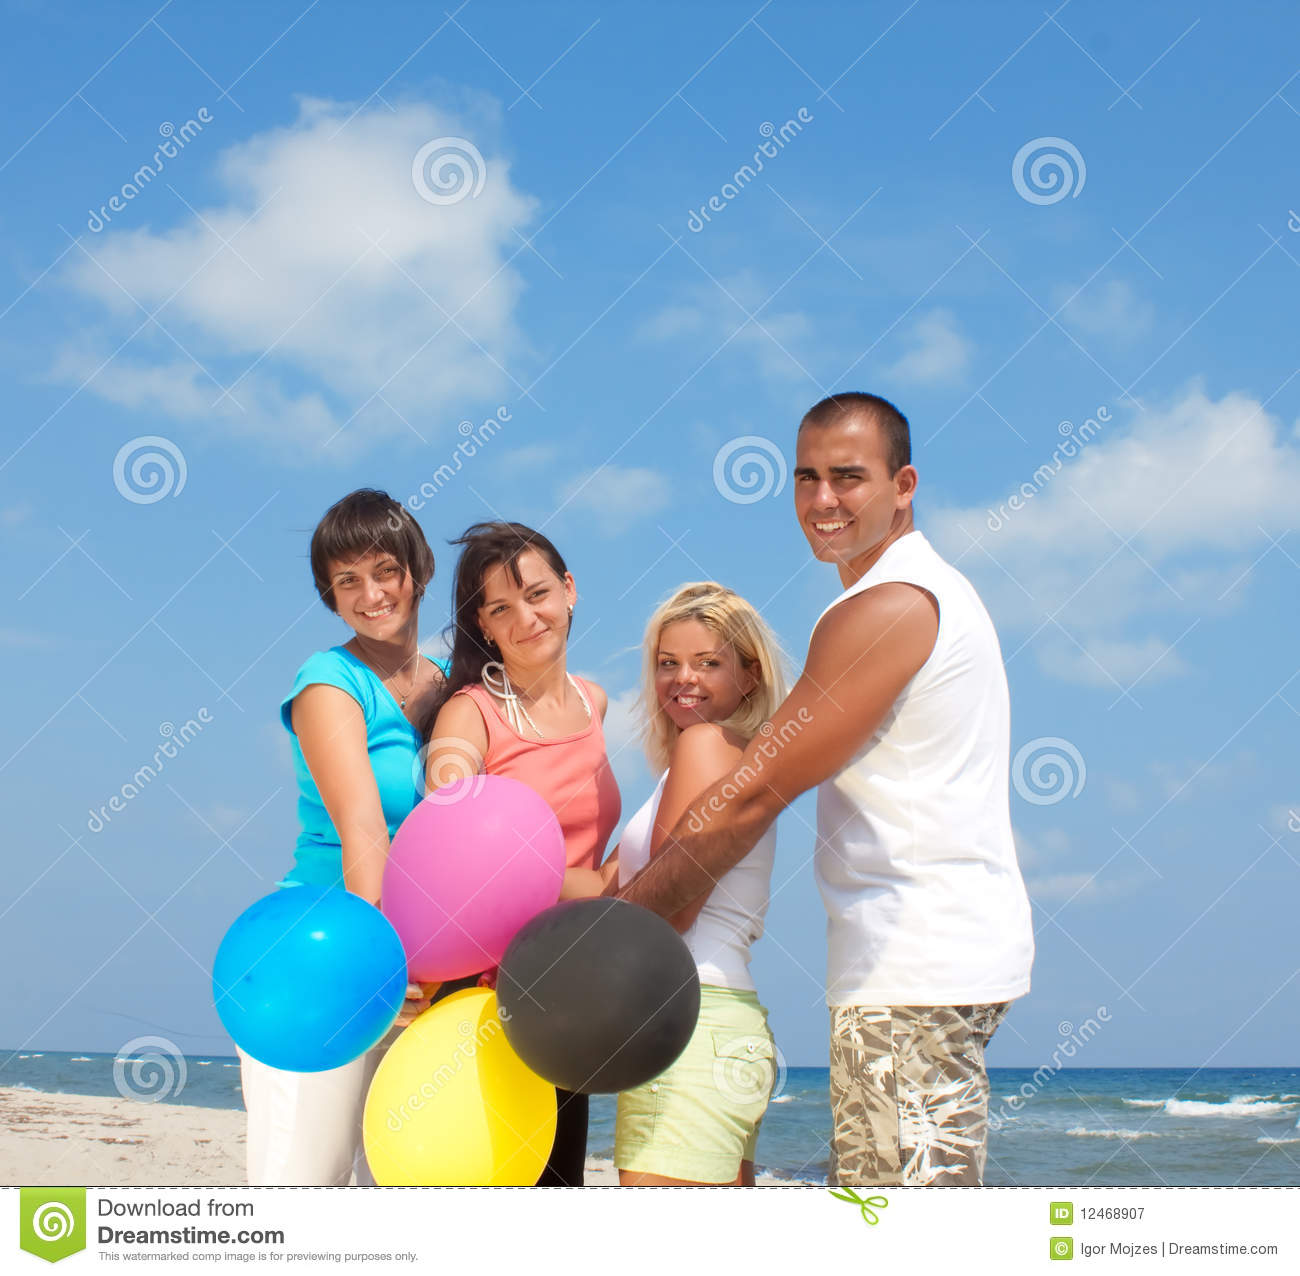 happy people holding balloons in cmyk colors royalty free stock photography image 12468907. Black Bedroom Furniture Sets. Home Design Ideas